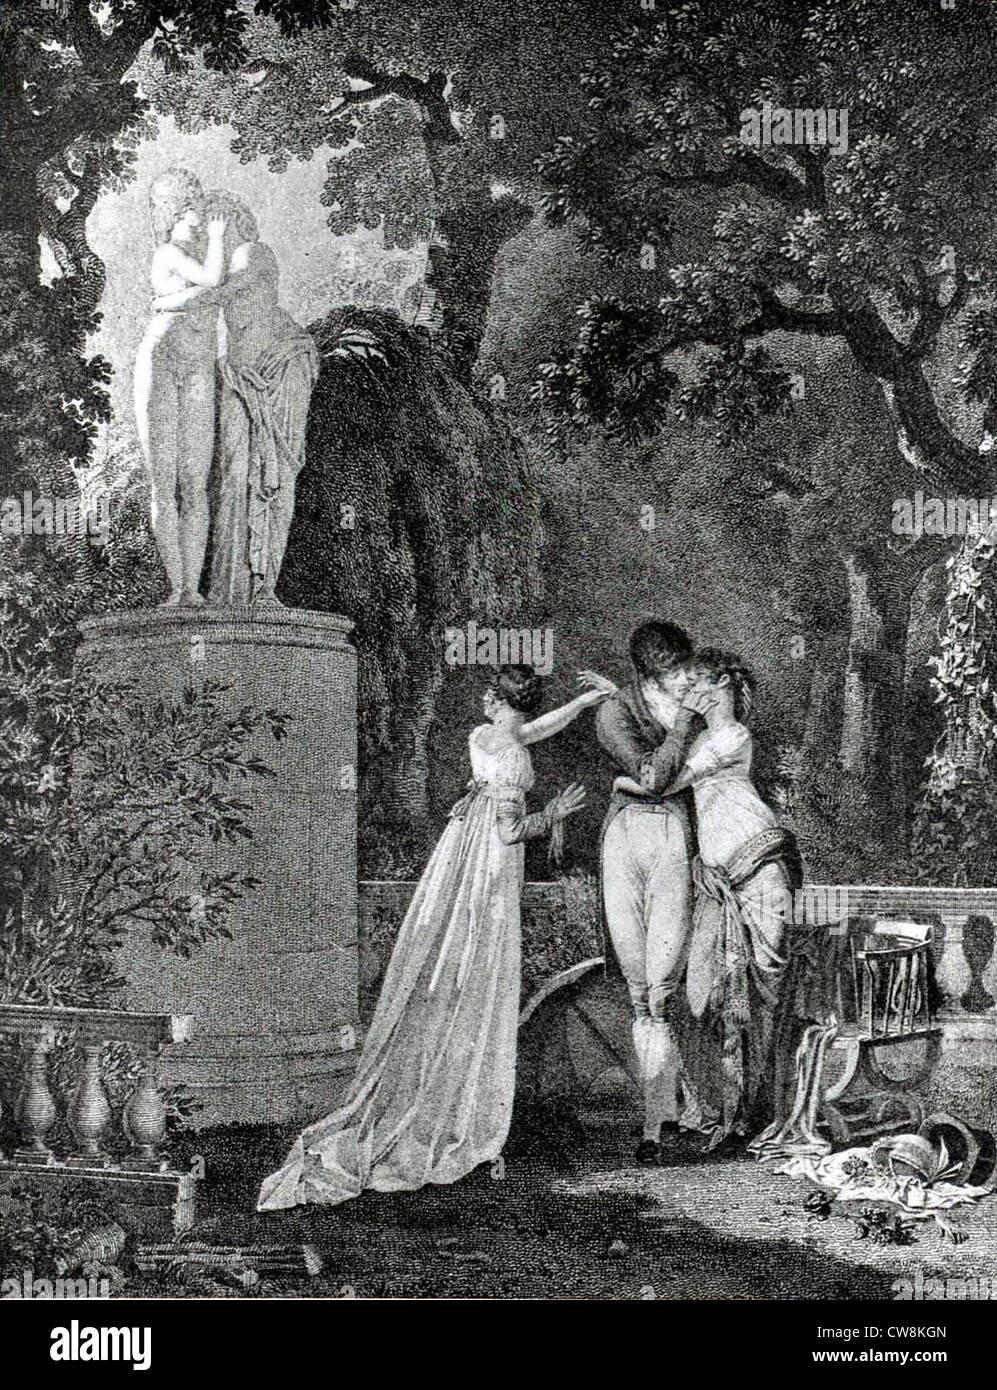 Engraving by Dutailly, Imitation of Antiquity - Stock Image